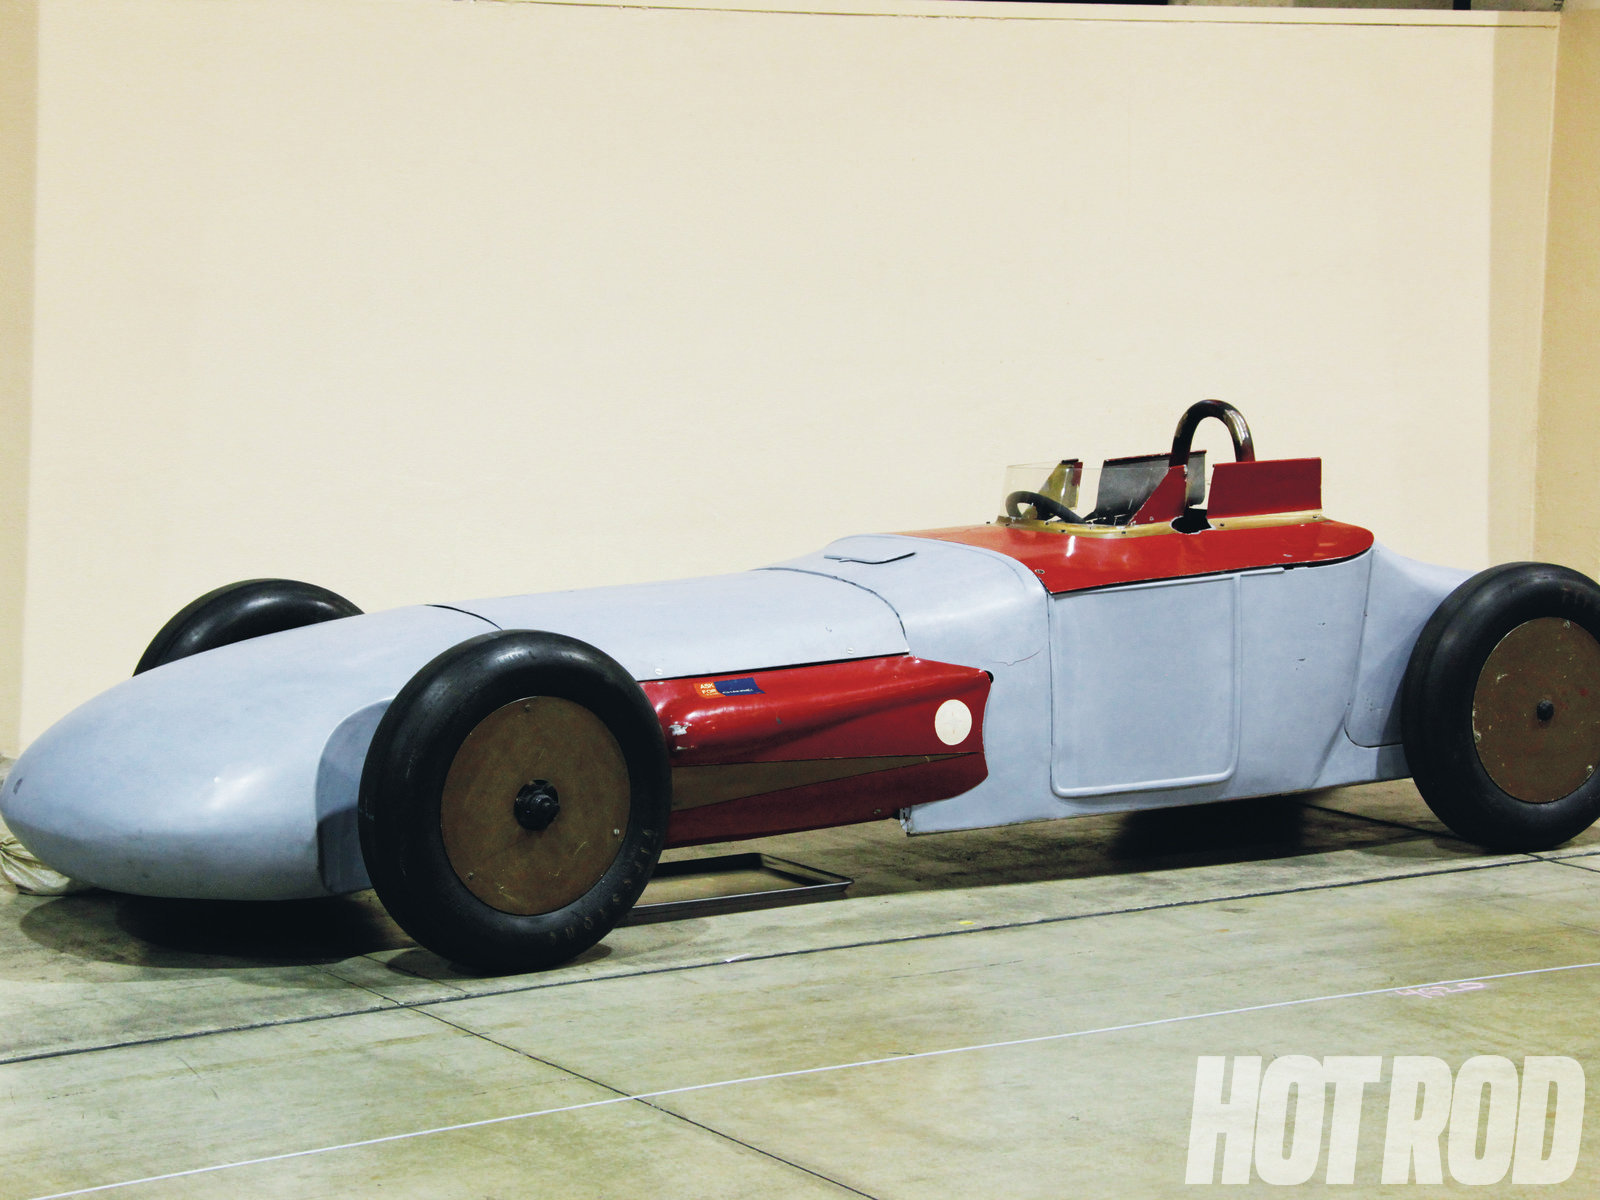 hight resolution of when it appeared in the jan 1962 hot rod jim culbert s model t bodied modified roadster had run as fast as 219 mph at the bonneville salt flats with a